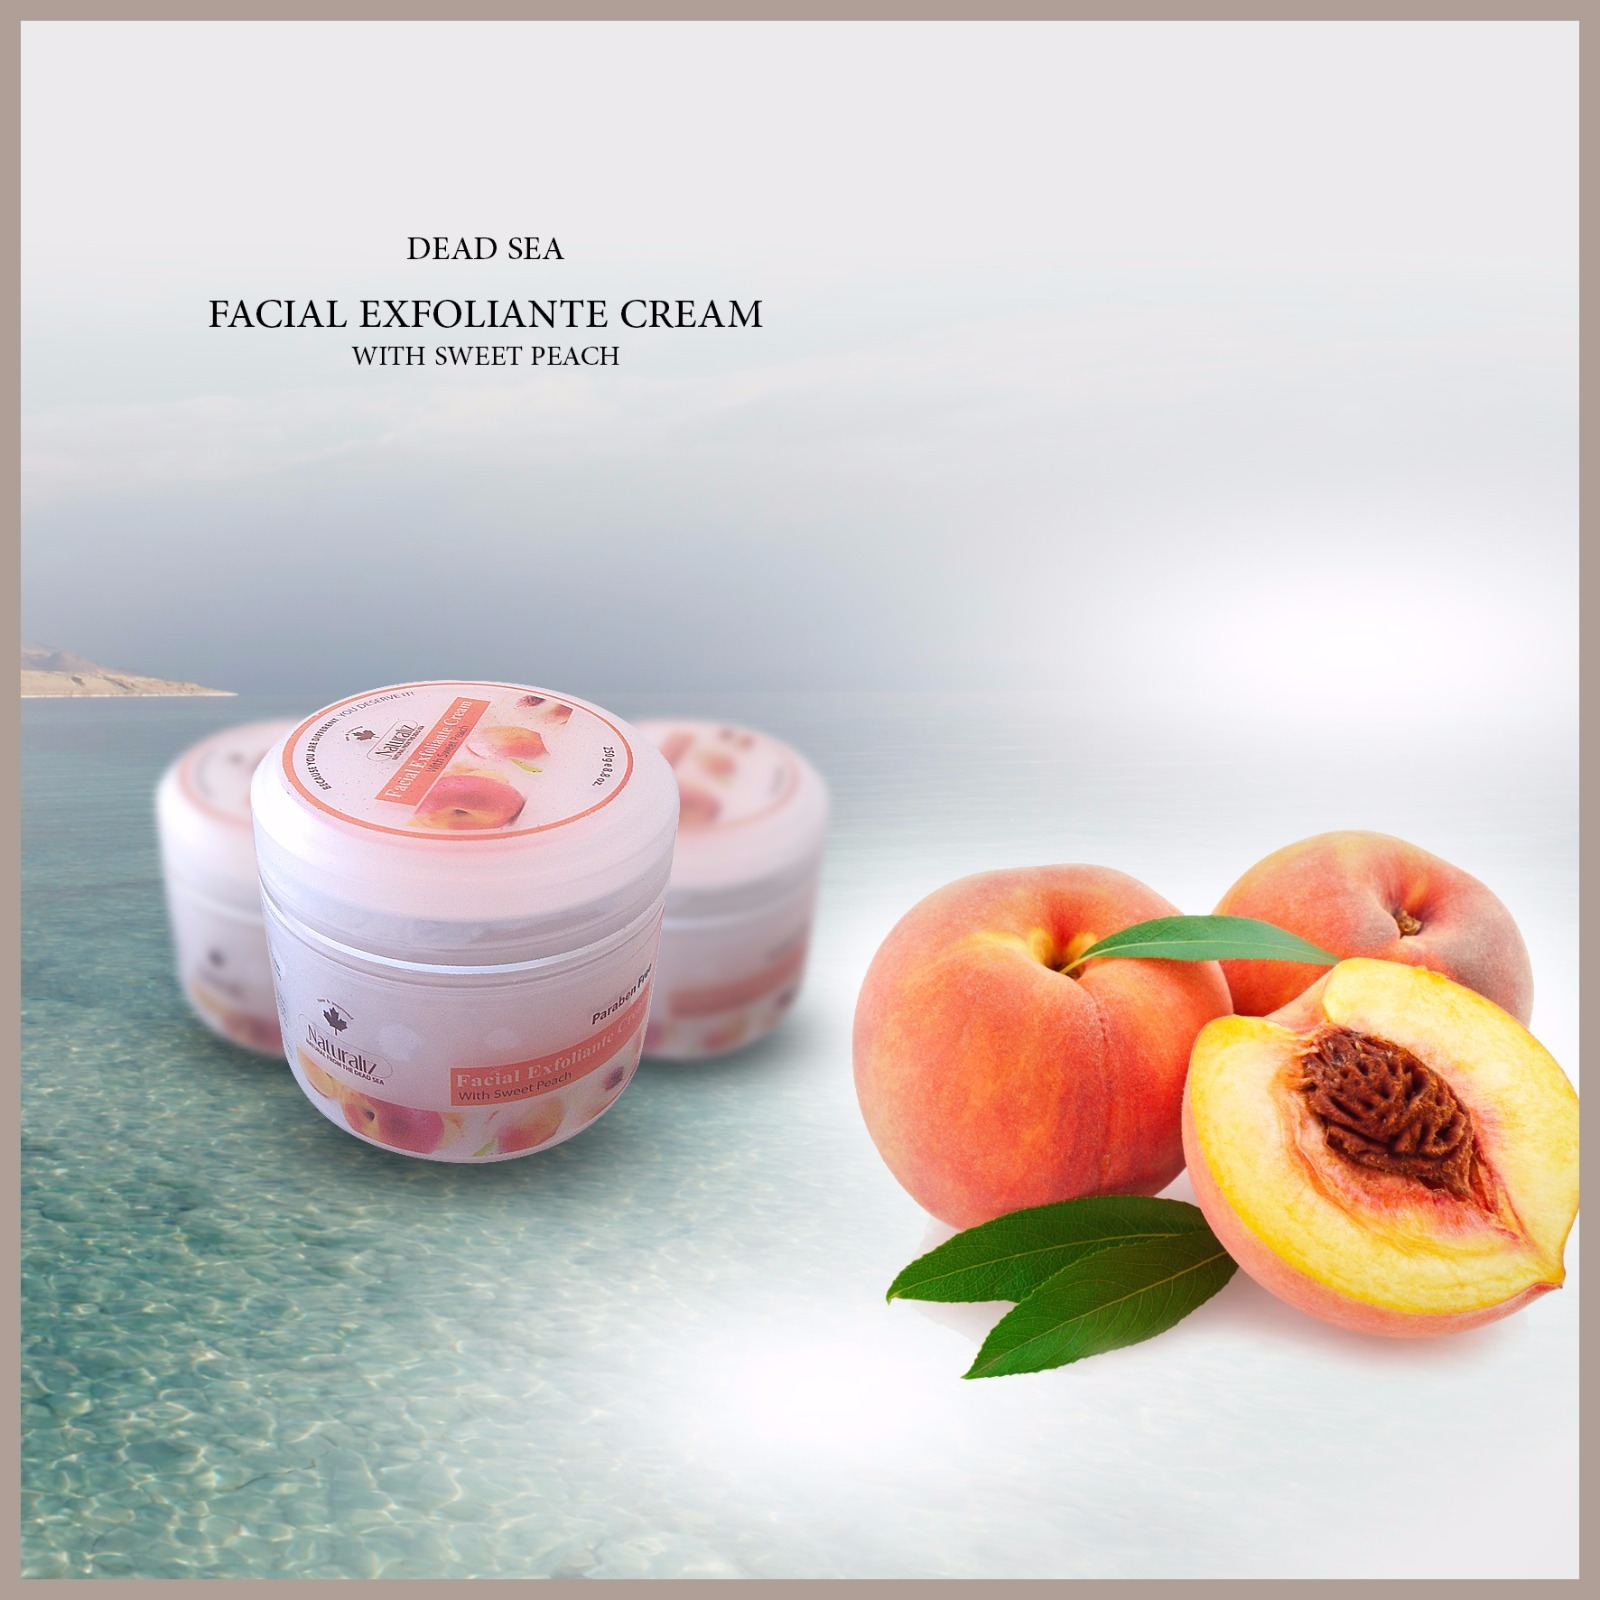 Facial Exfoliante Cream With Sweet Peach